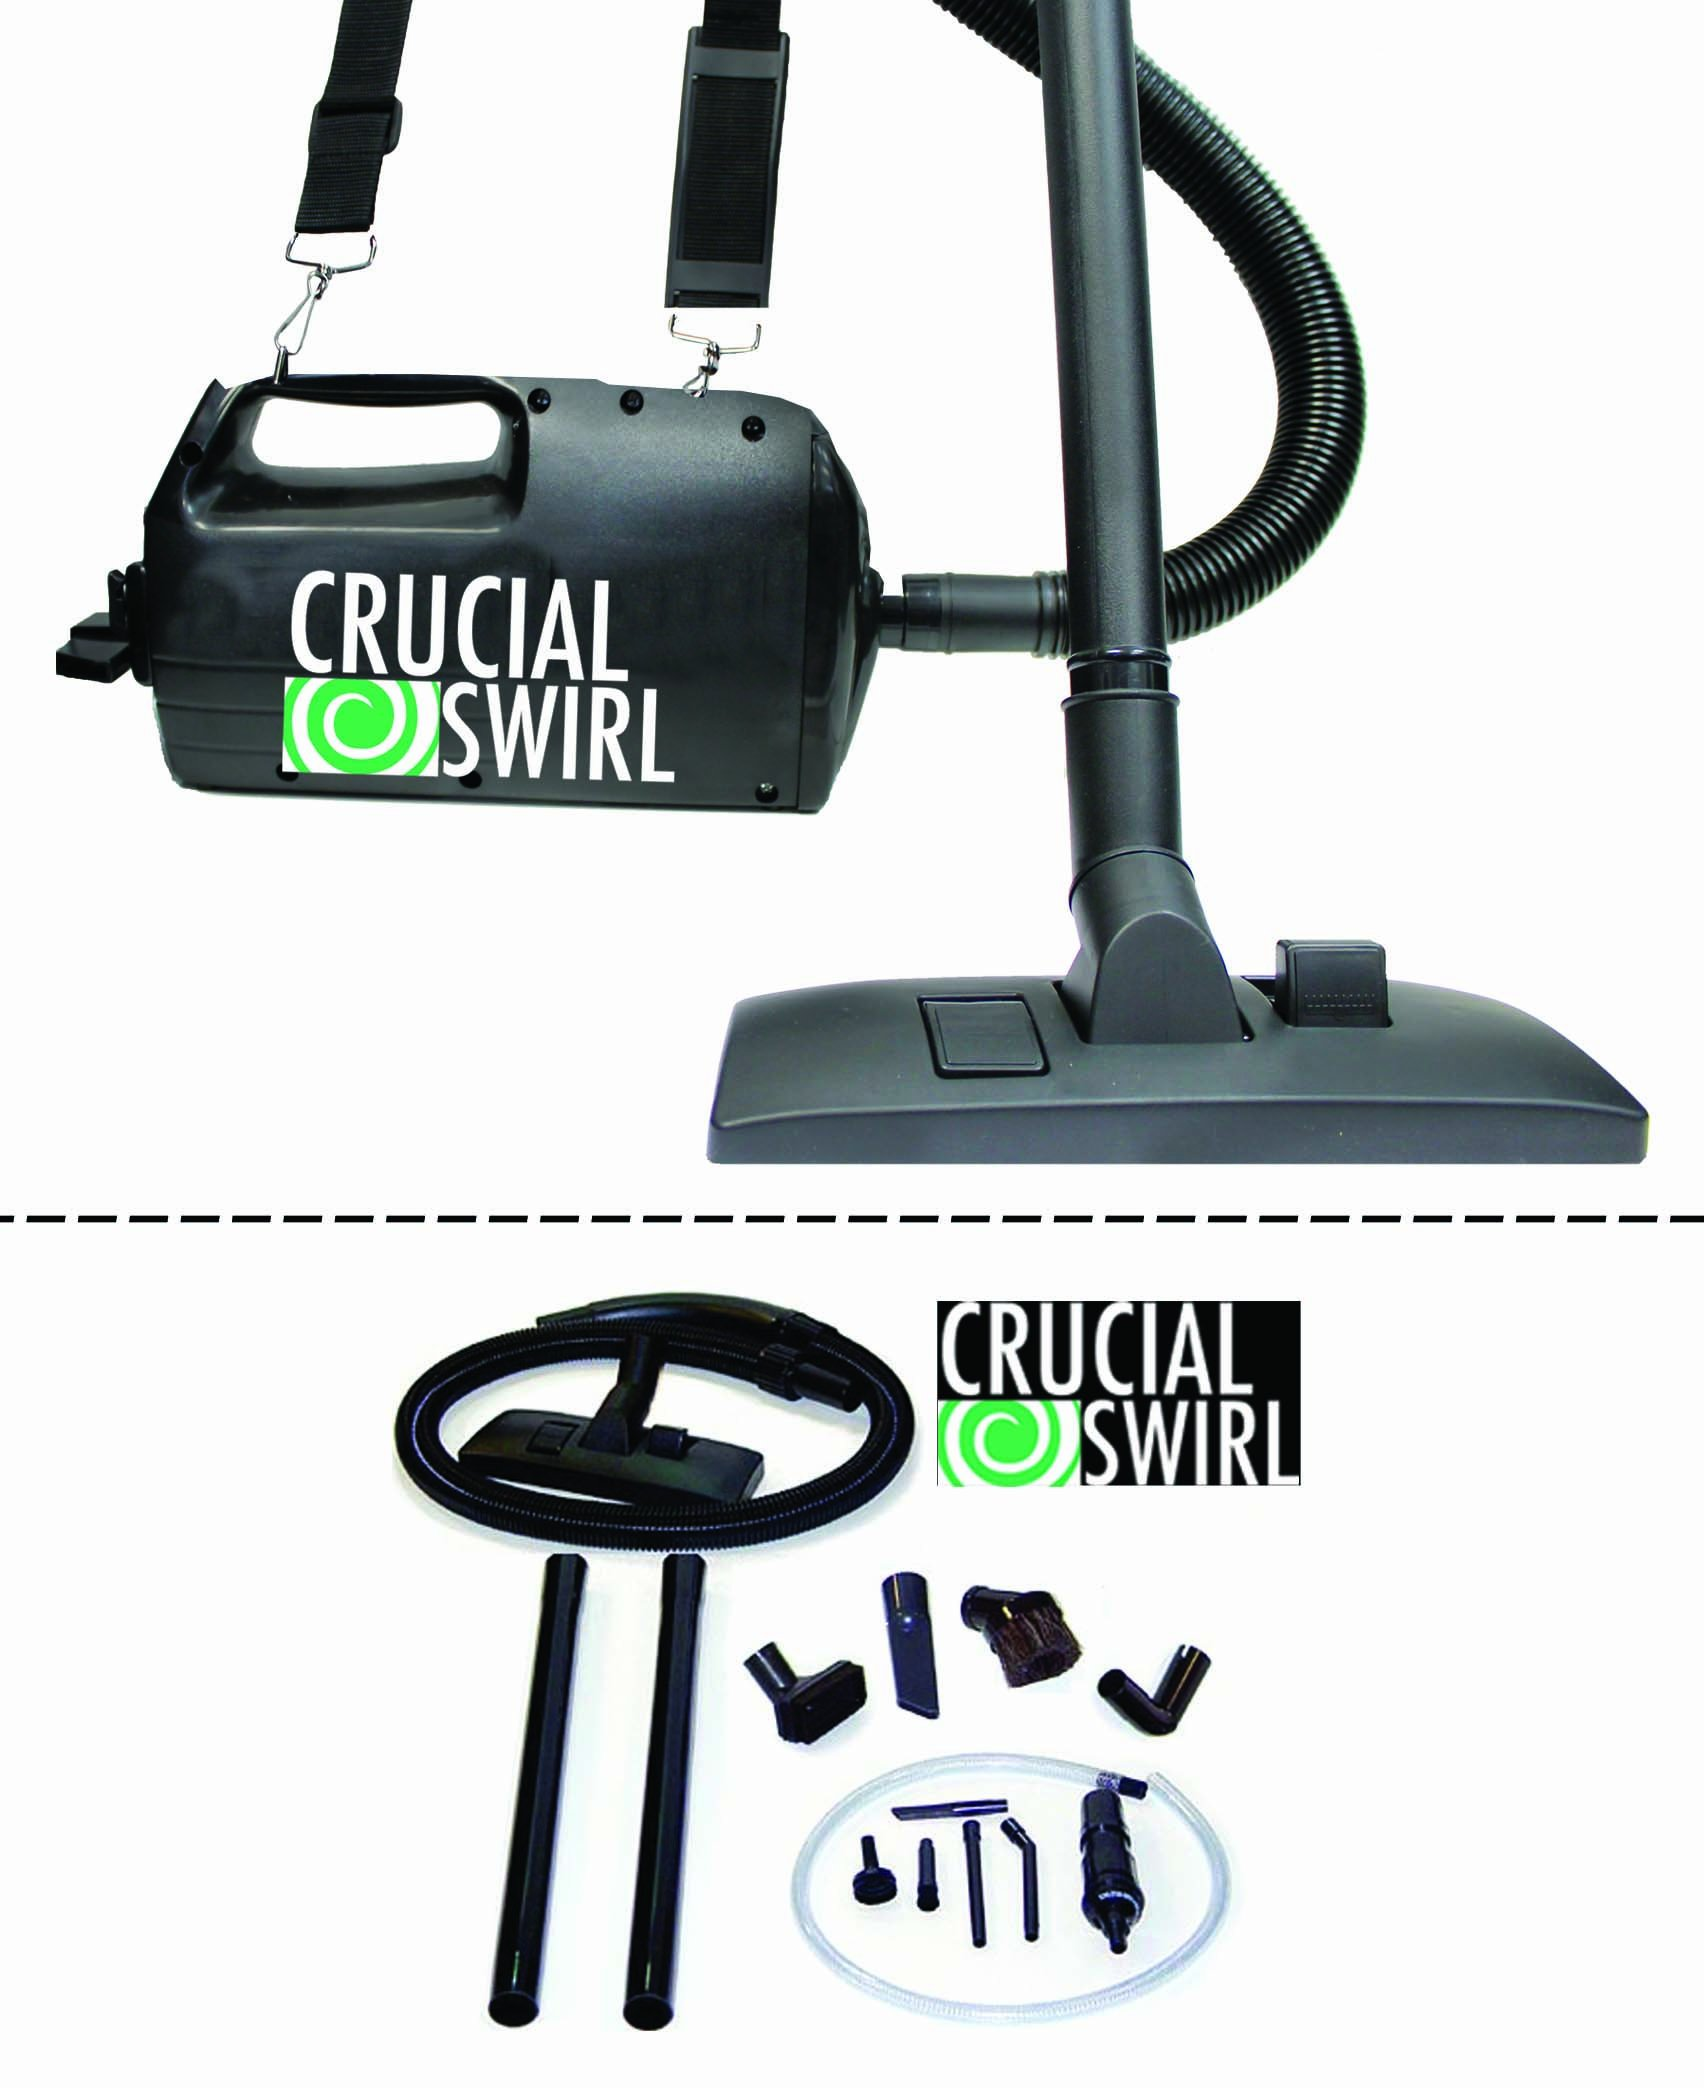 Crucial Swirl Powerful Handheld Portable Vacuum Cleaner, Includes Deluxe Cleaning Attachments & Micro Cleaning Attachment Set, Only 4.5lbs & has Blower Function Too, Perfect for Car detailing, Designed and Engineered by Crucial Vacuum - Corded by Crucial Vacuum